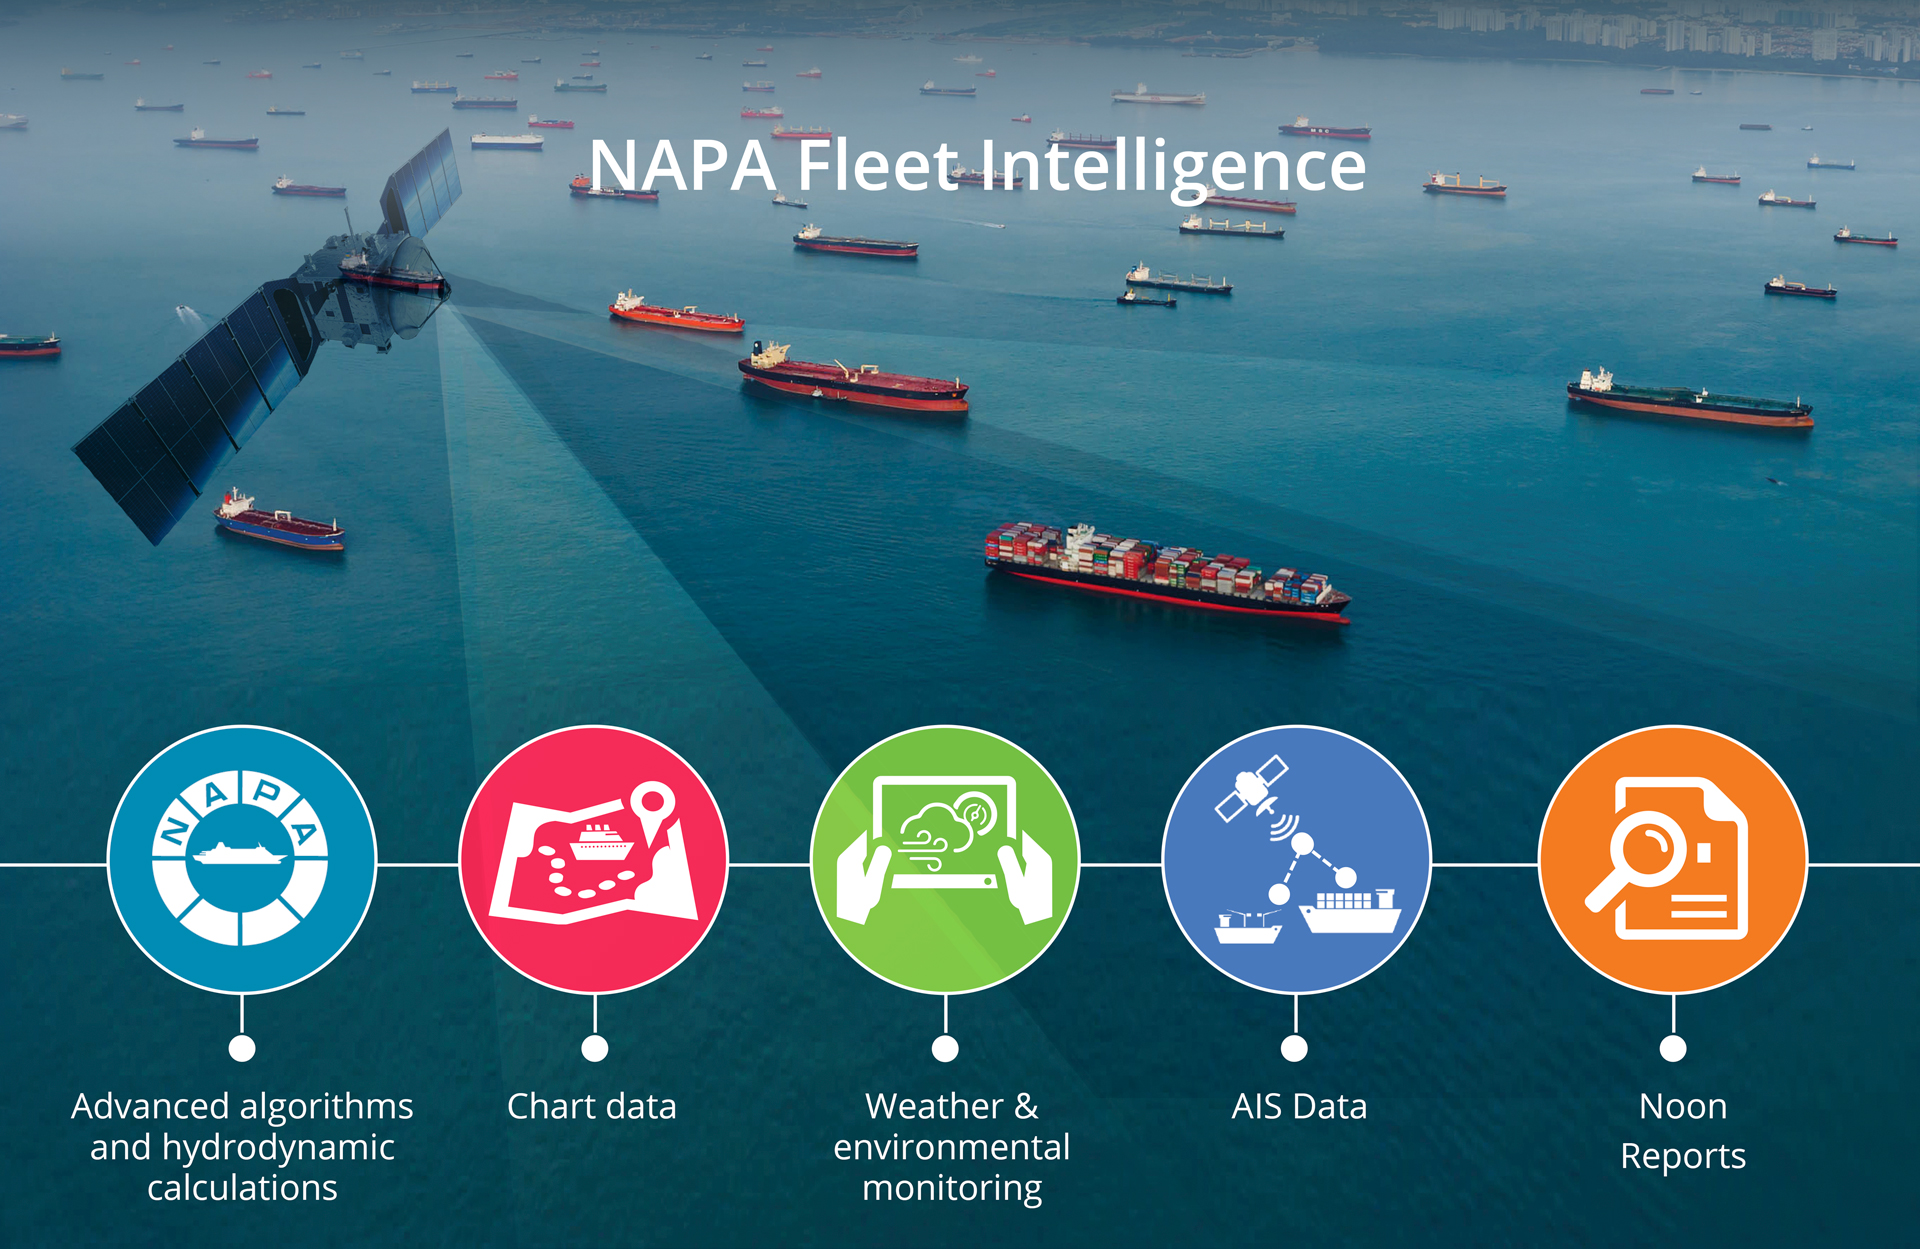 NAPA Fleet Intelligence combines several data sources for ship performance monitoring